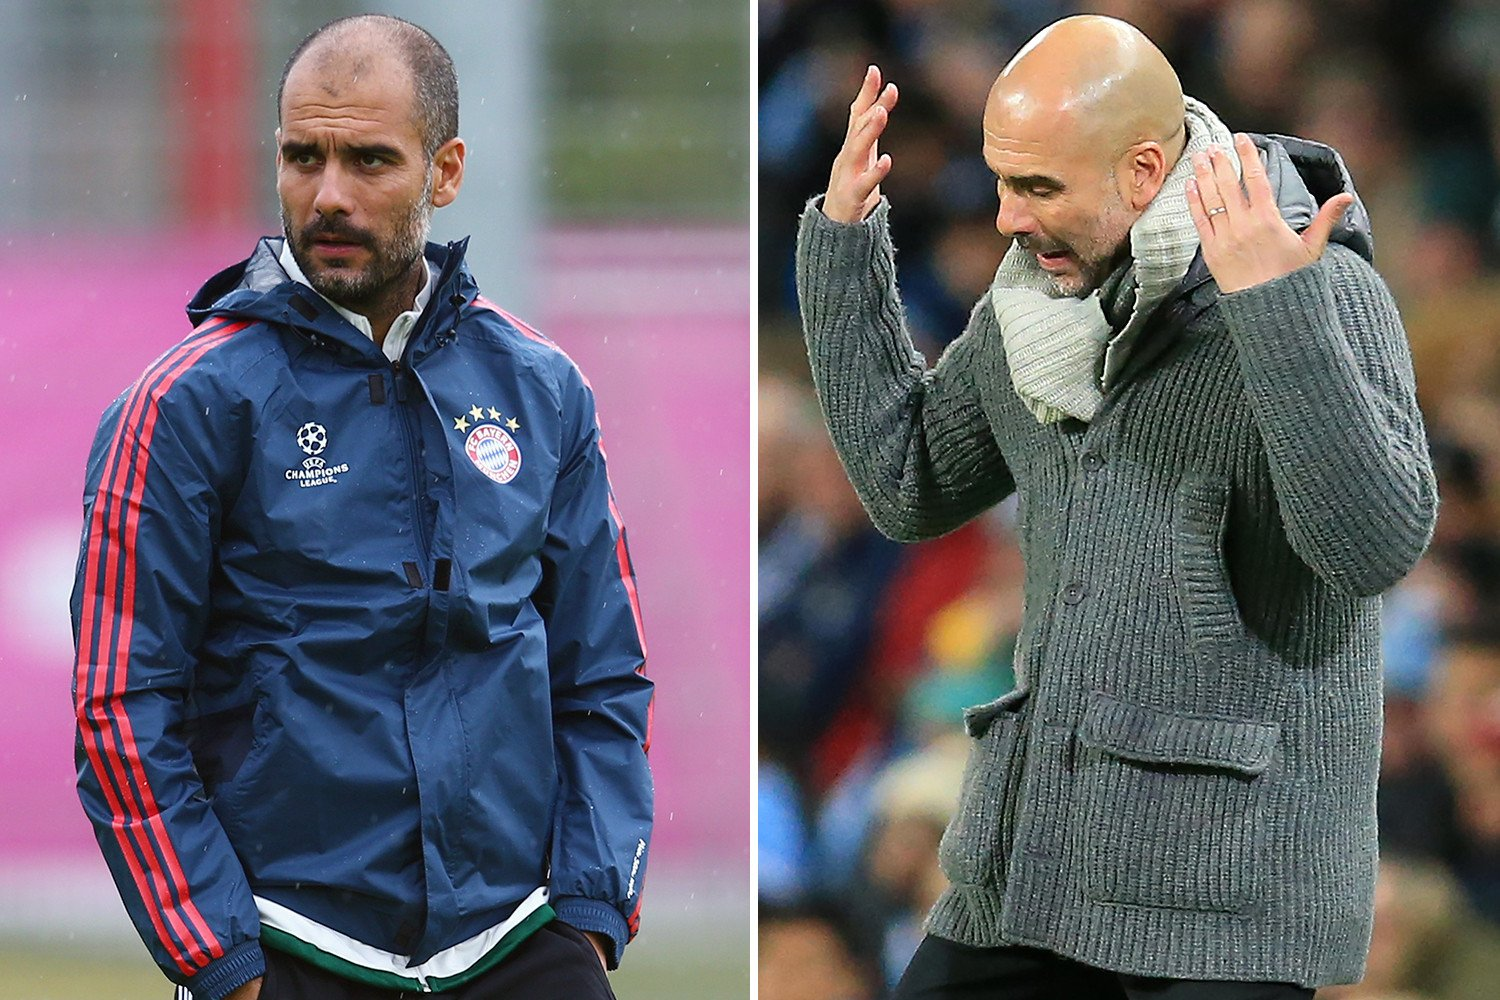 Pep Guardiola admits he must earn Champions League glory with Man City to be considered a success in England